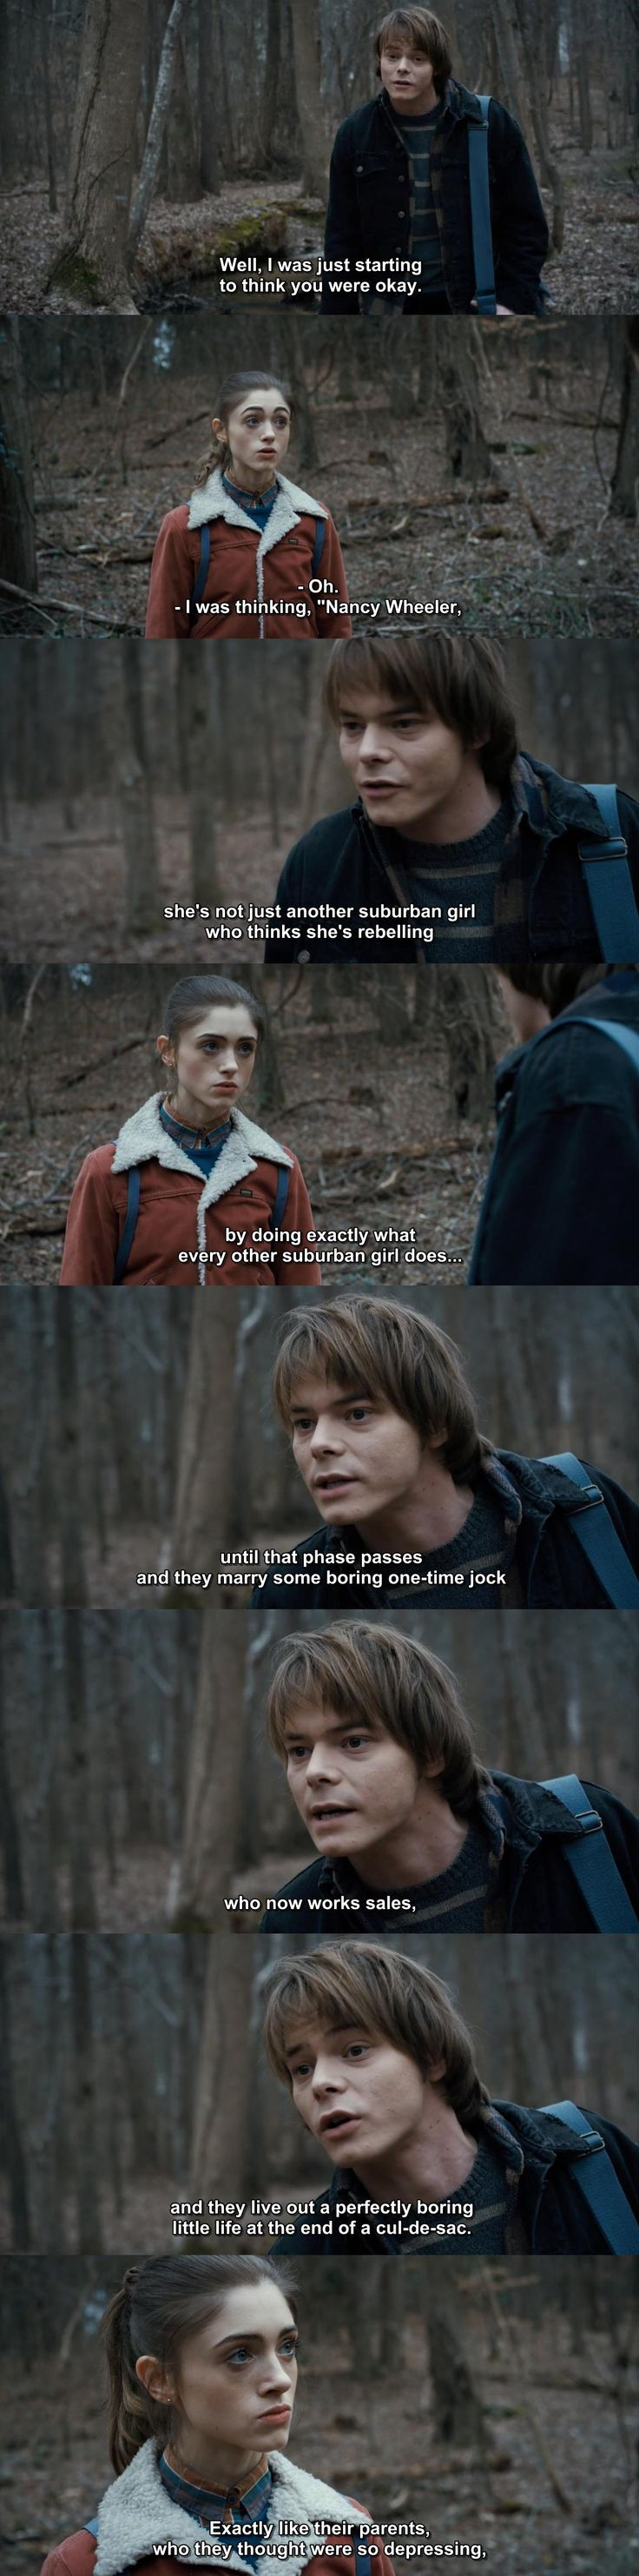 Stranger Things - Jonathan Byers and Nancy Wheeler. BURN.